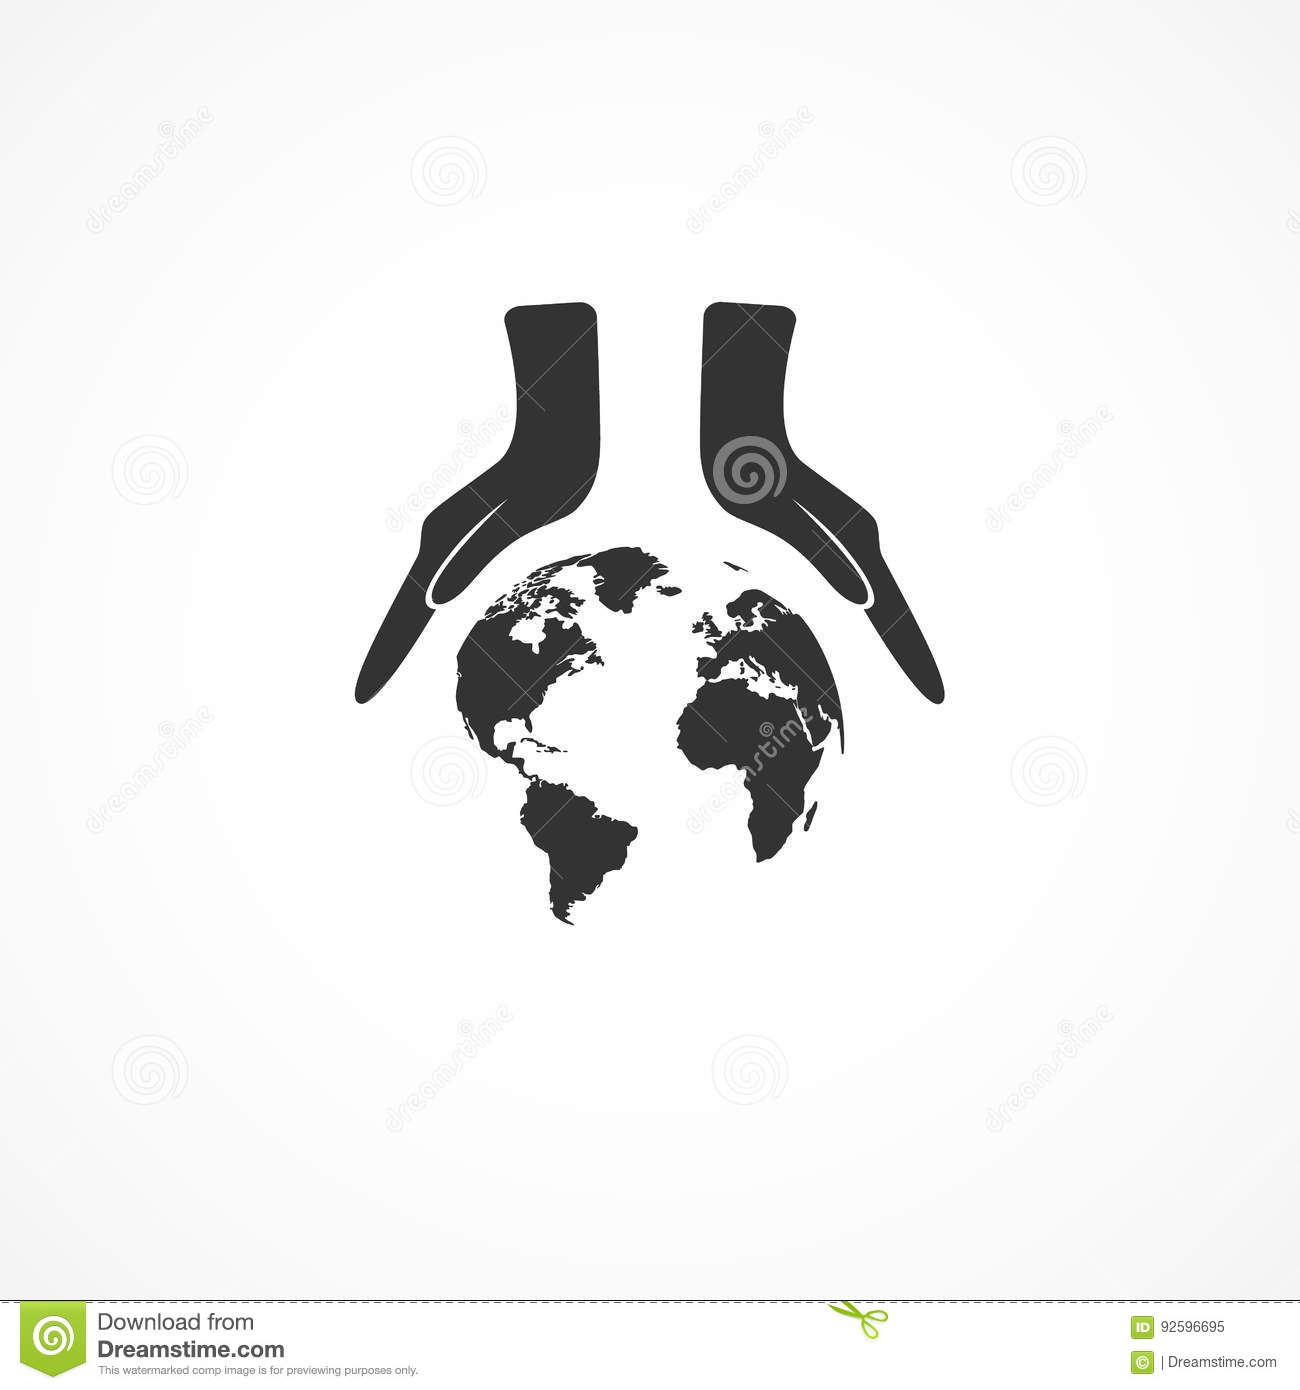 Icon hands and the earth.